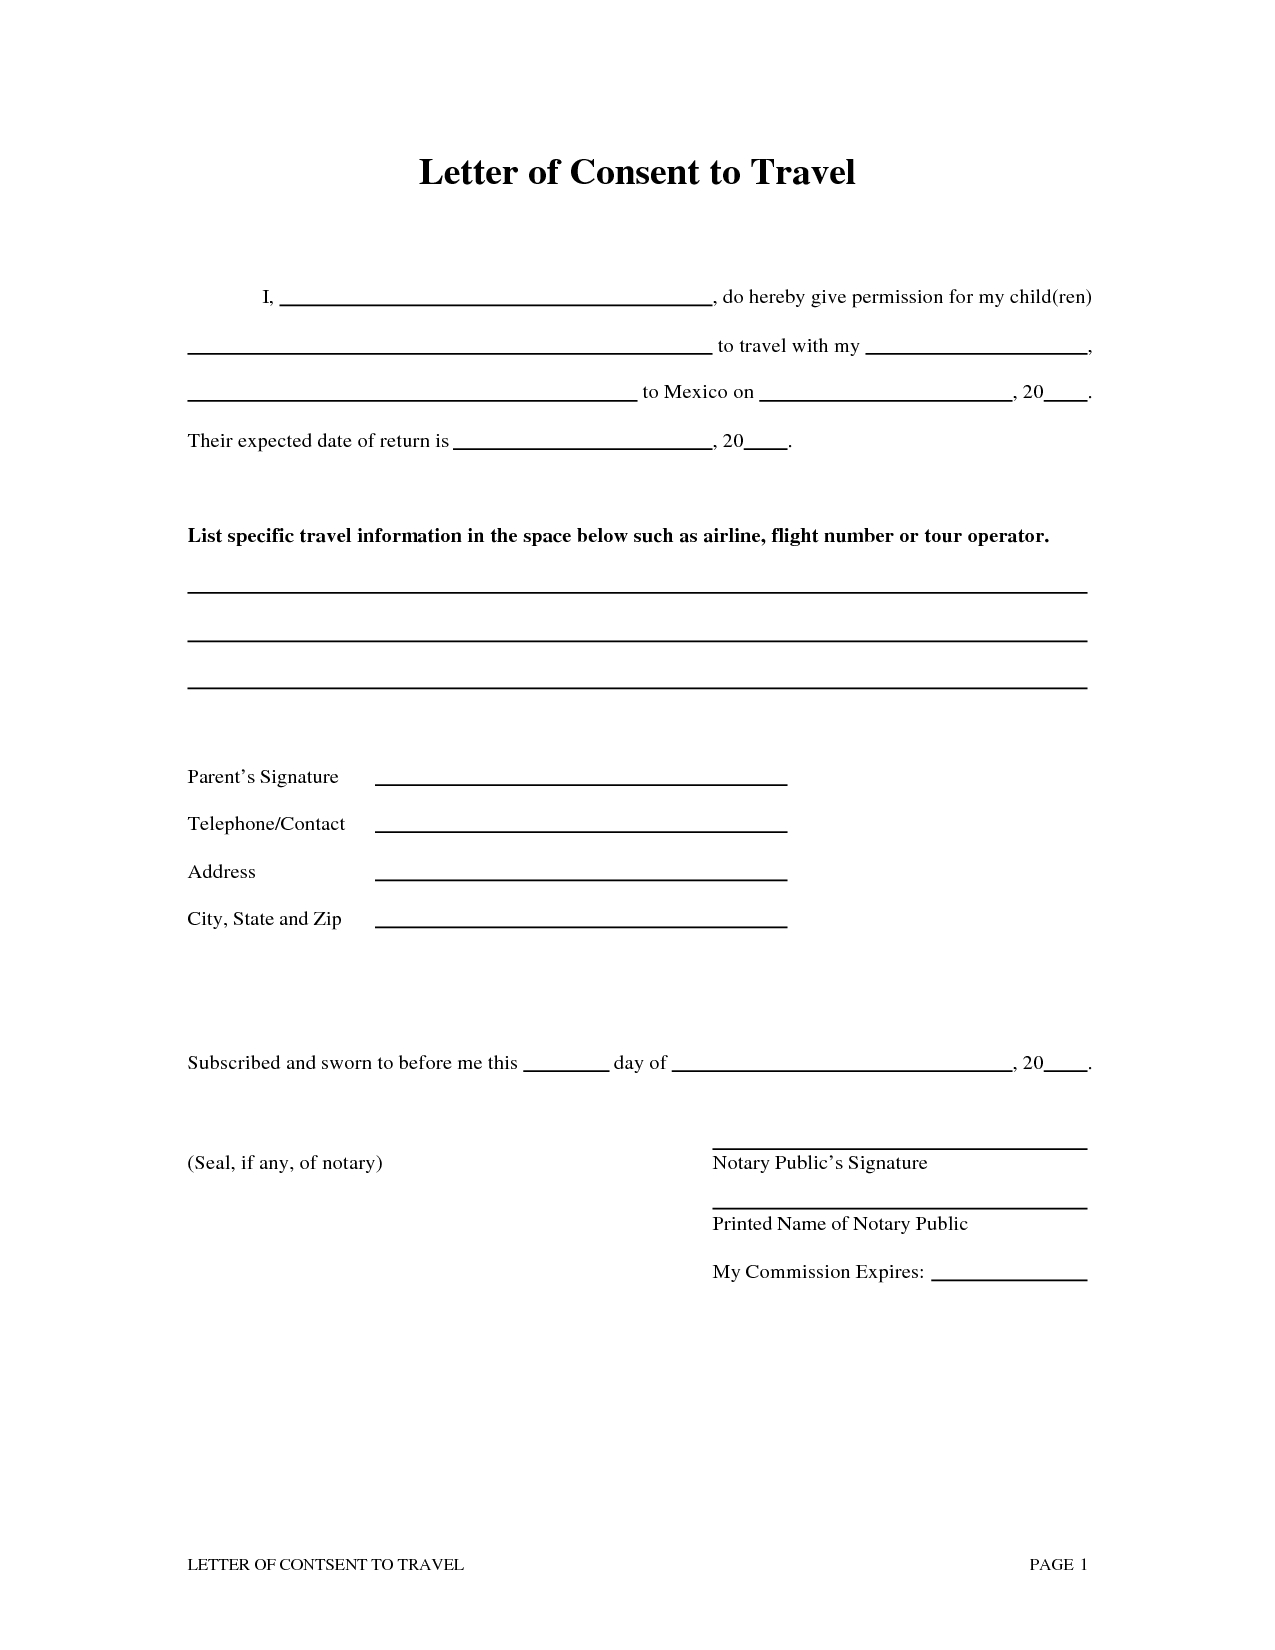 Letter Of Consent for Travel Of A Minor Child Template - Inspirational Notarized Letter Template for Child Travel Your